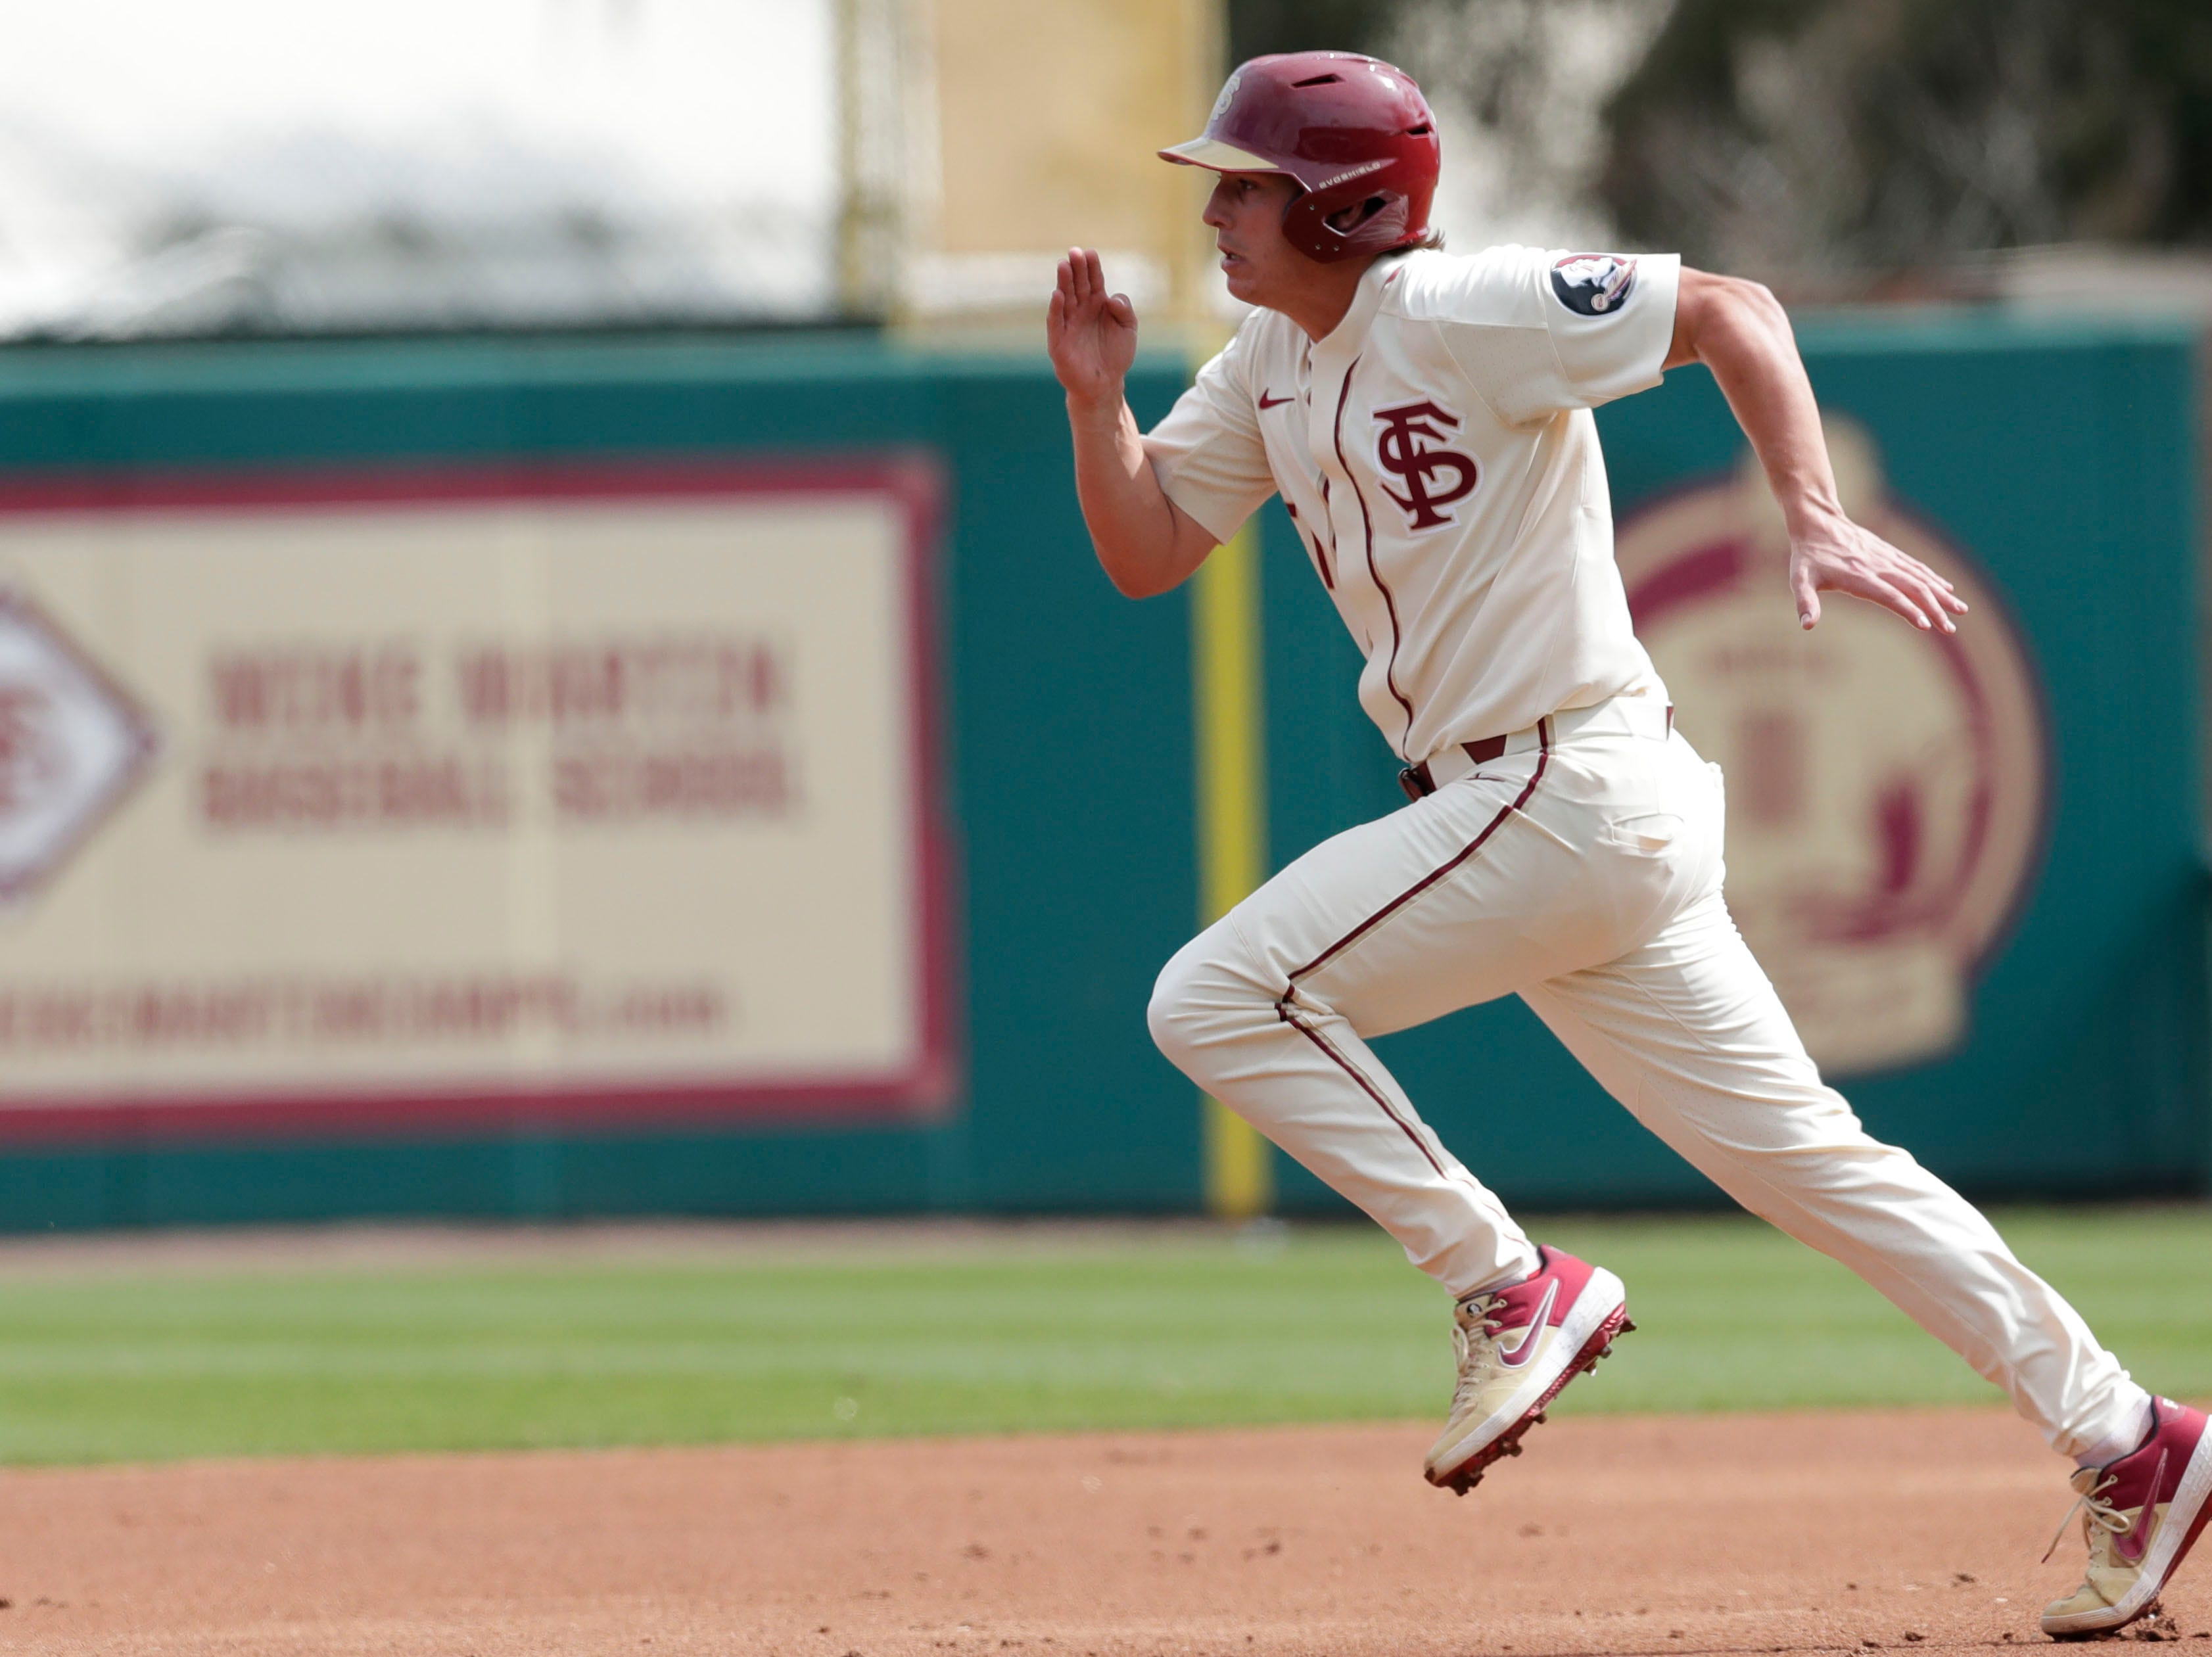 The Florida State Seminoles host the Maine Black Bears for the second game of the series, Saturday Feb. 16, 2019.